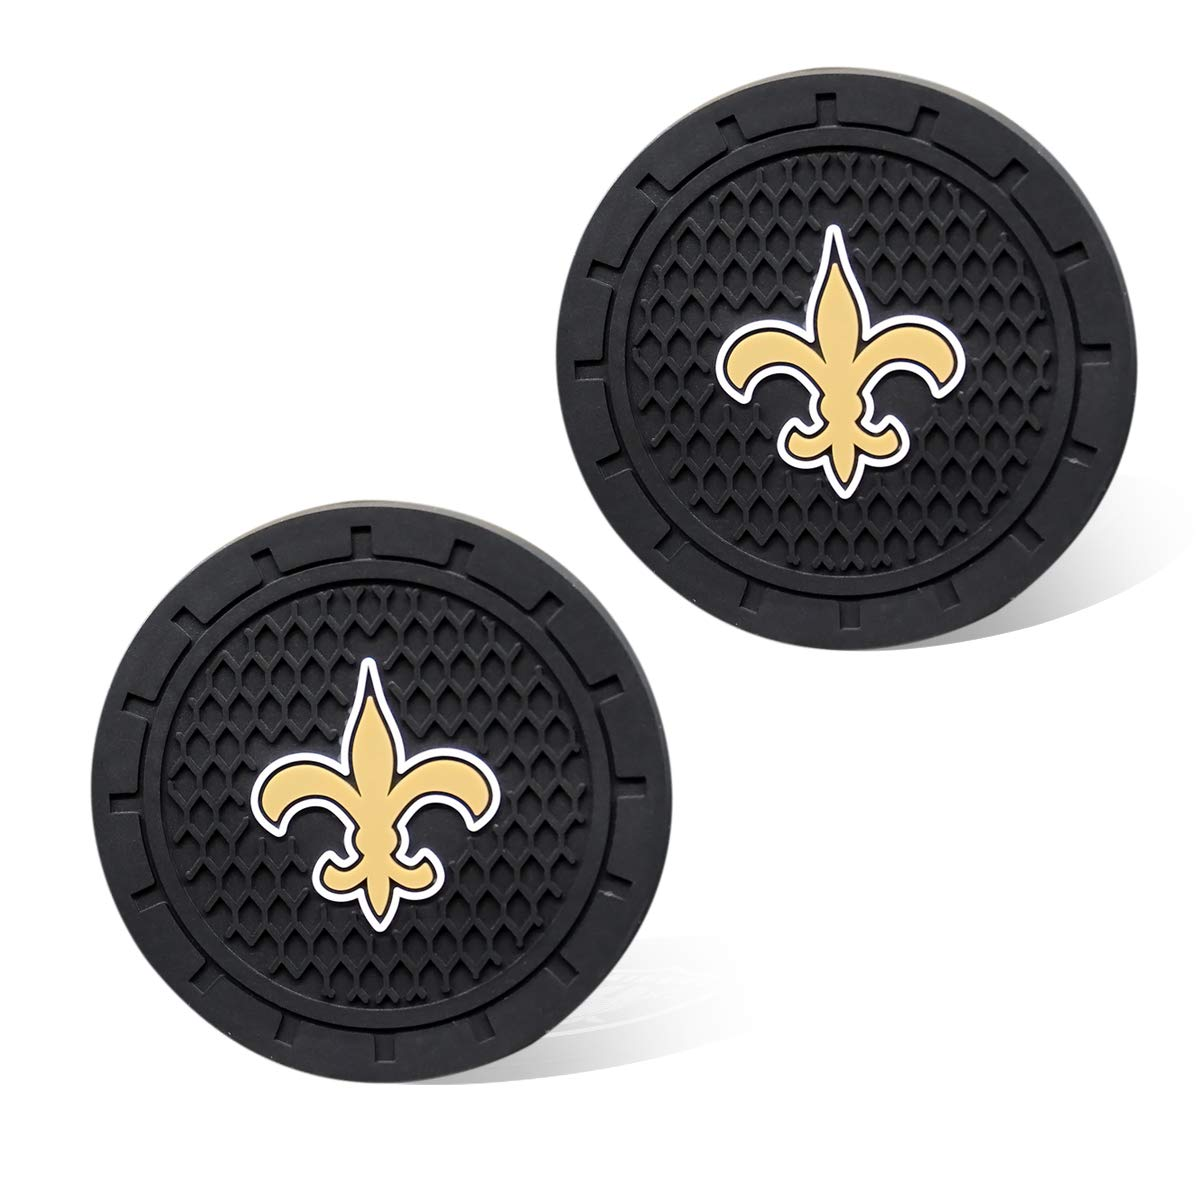 Cleveland Browns Wall Stickz wesport 2.75 Inch Diameter Oval Tough Car Logo Vehicle Travel Auto Cup Holder Insert Coaster Can 2 Pcs Pack